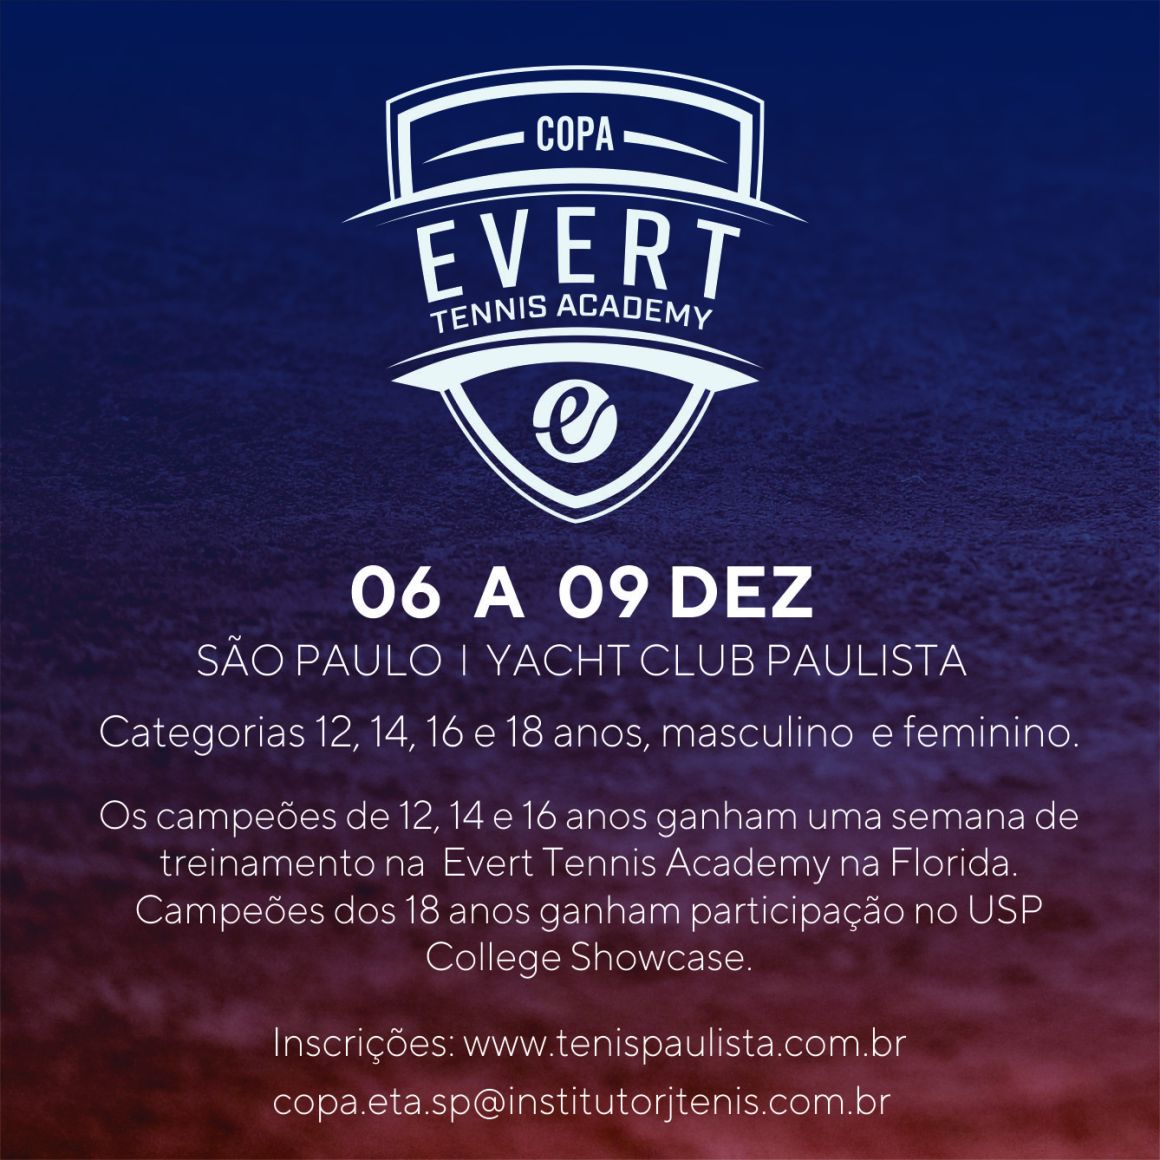 COPA EVERT TENNIS ACADEMY